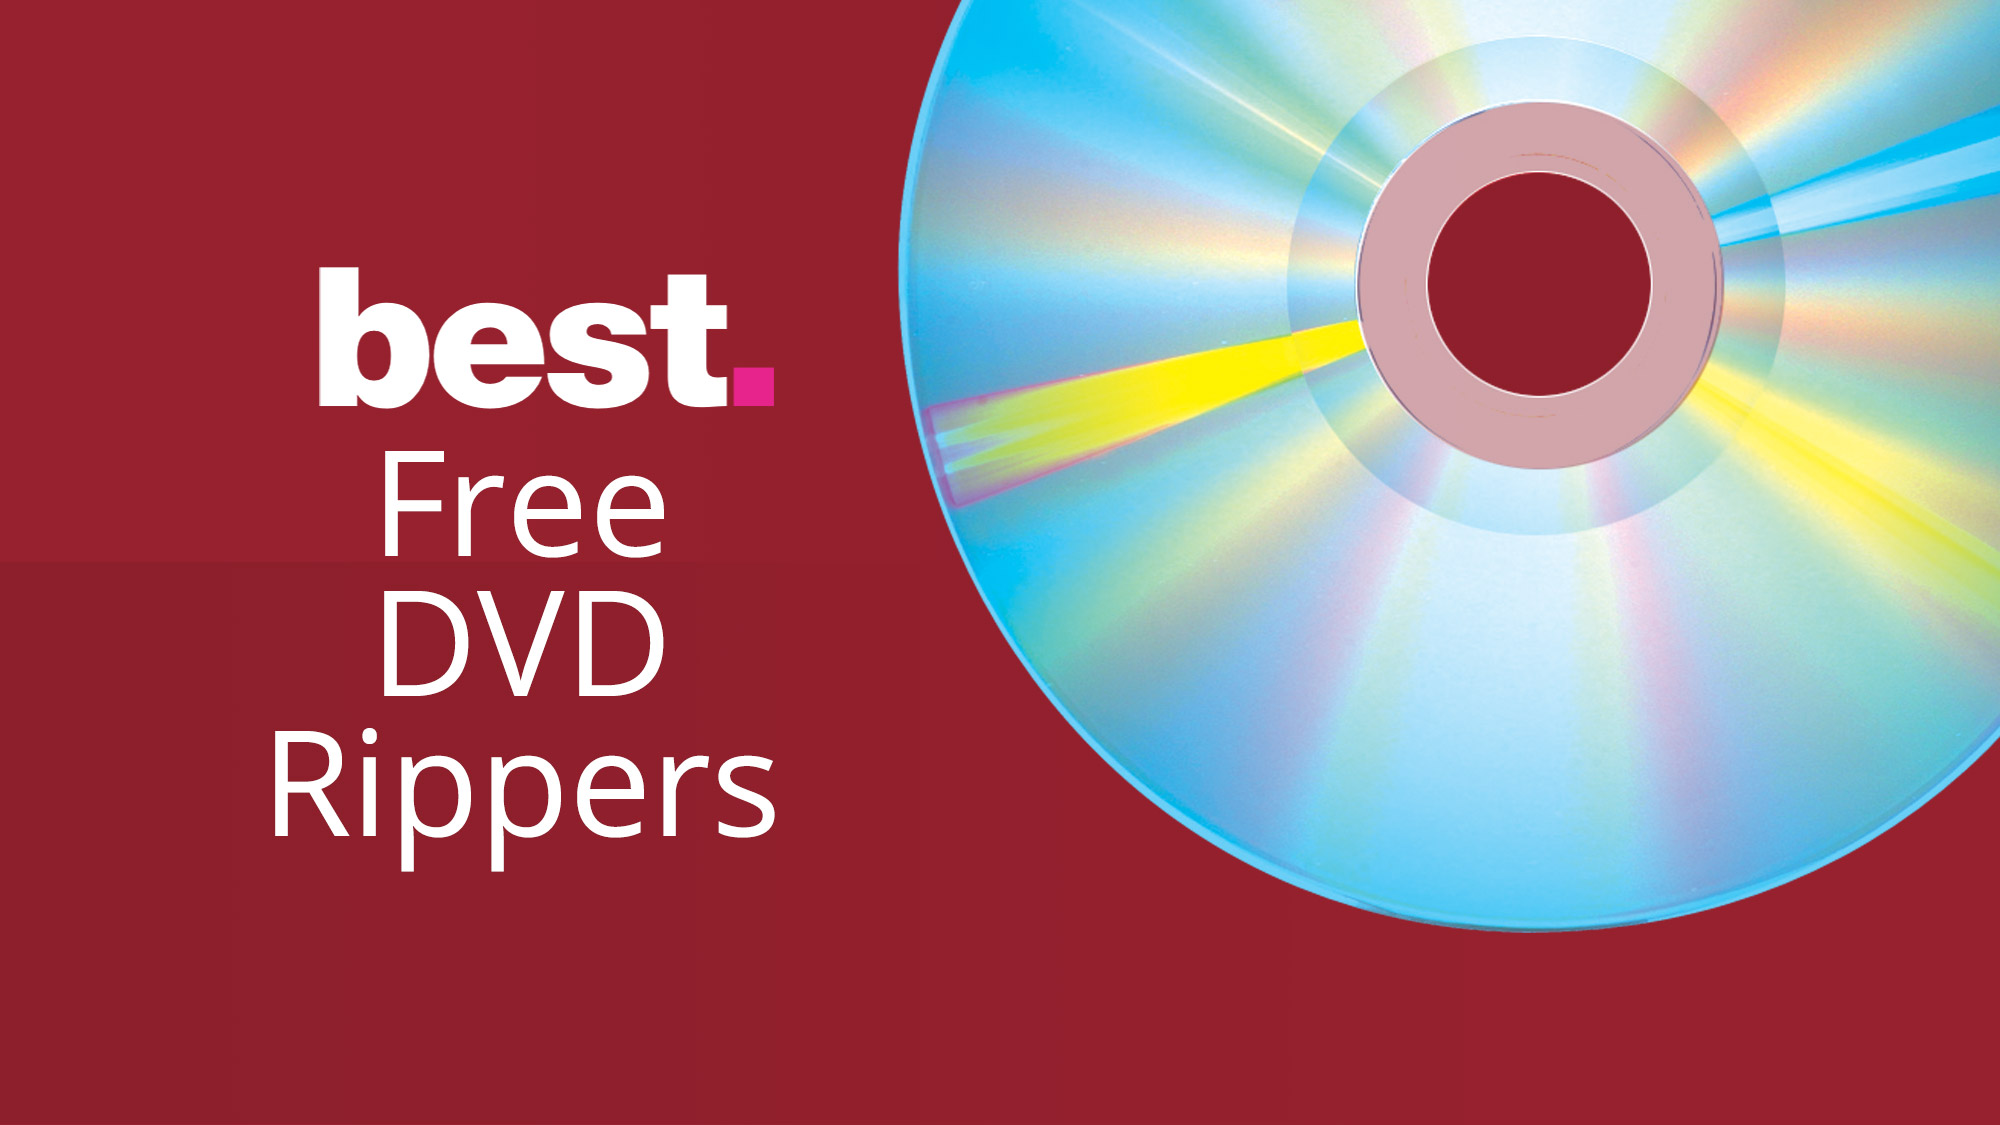 free dvd ripper for windows 10